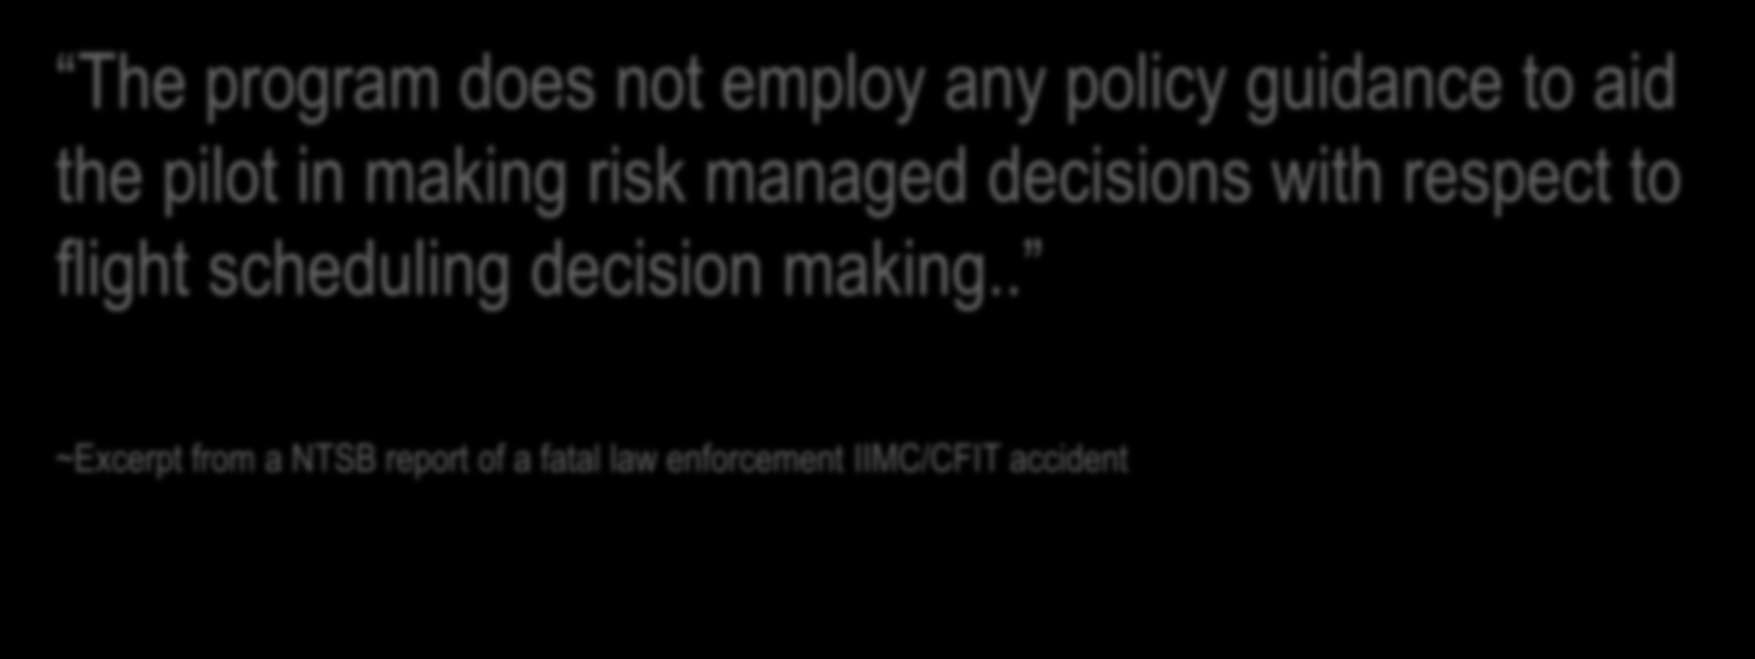 "SHIFT IN DEFINITION OF WHAT RISK IS In the 1970 s Occupational Risk Management was implemented to shift ""One safety thing we management learned from from this government accident oversight is that if"